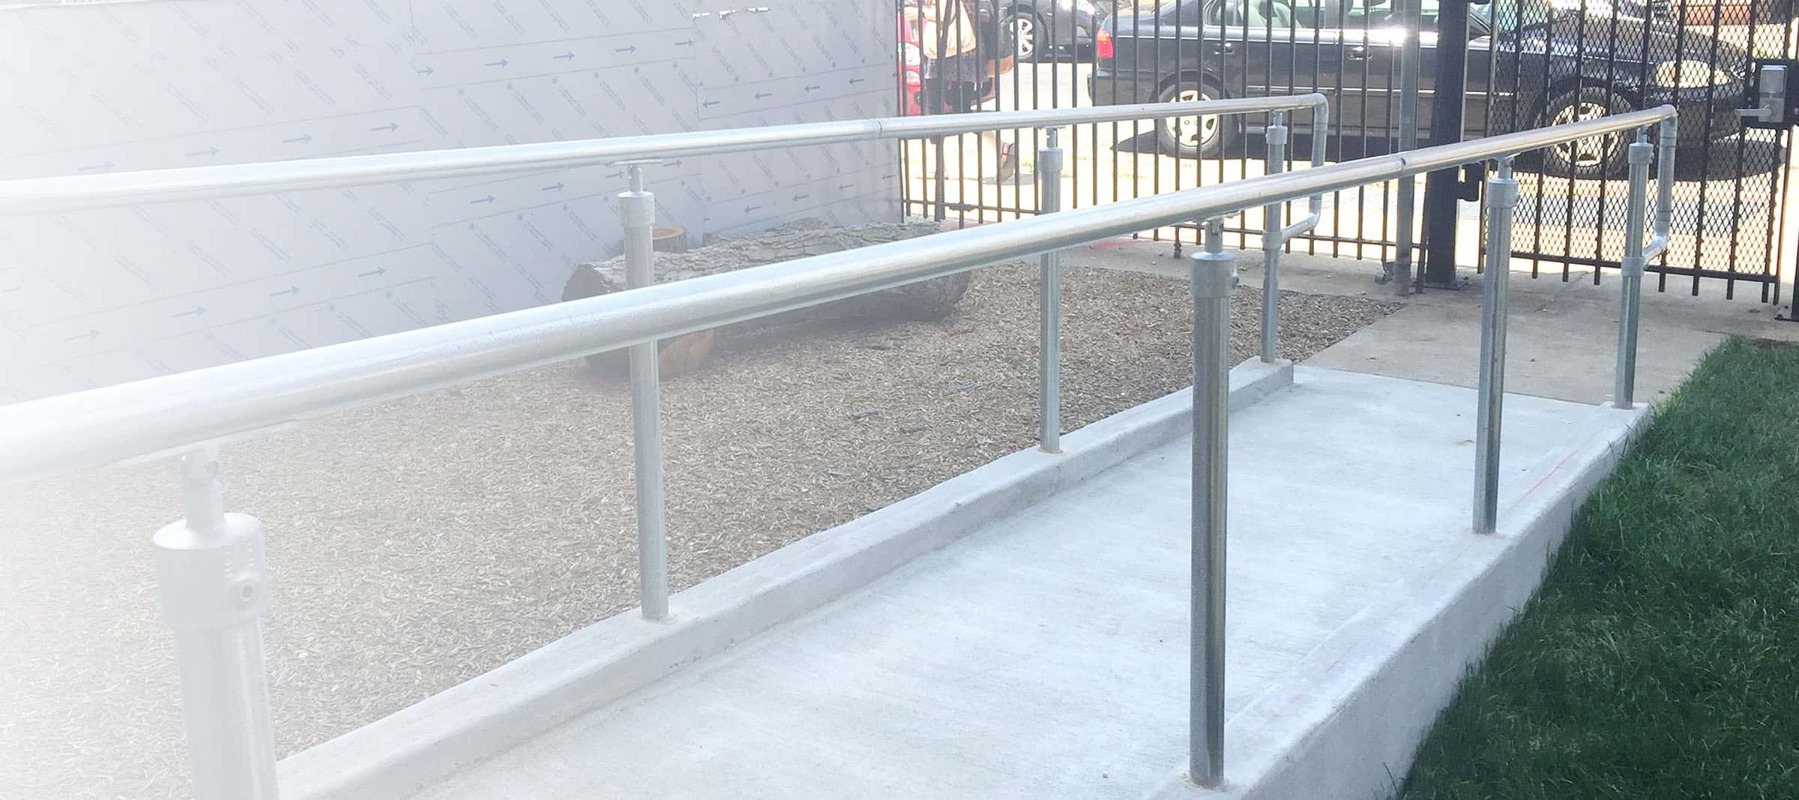 Handicap Handrail for Ramps and Stairs - Fully ADA Compliant ...